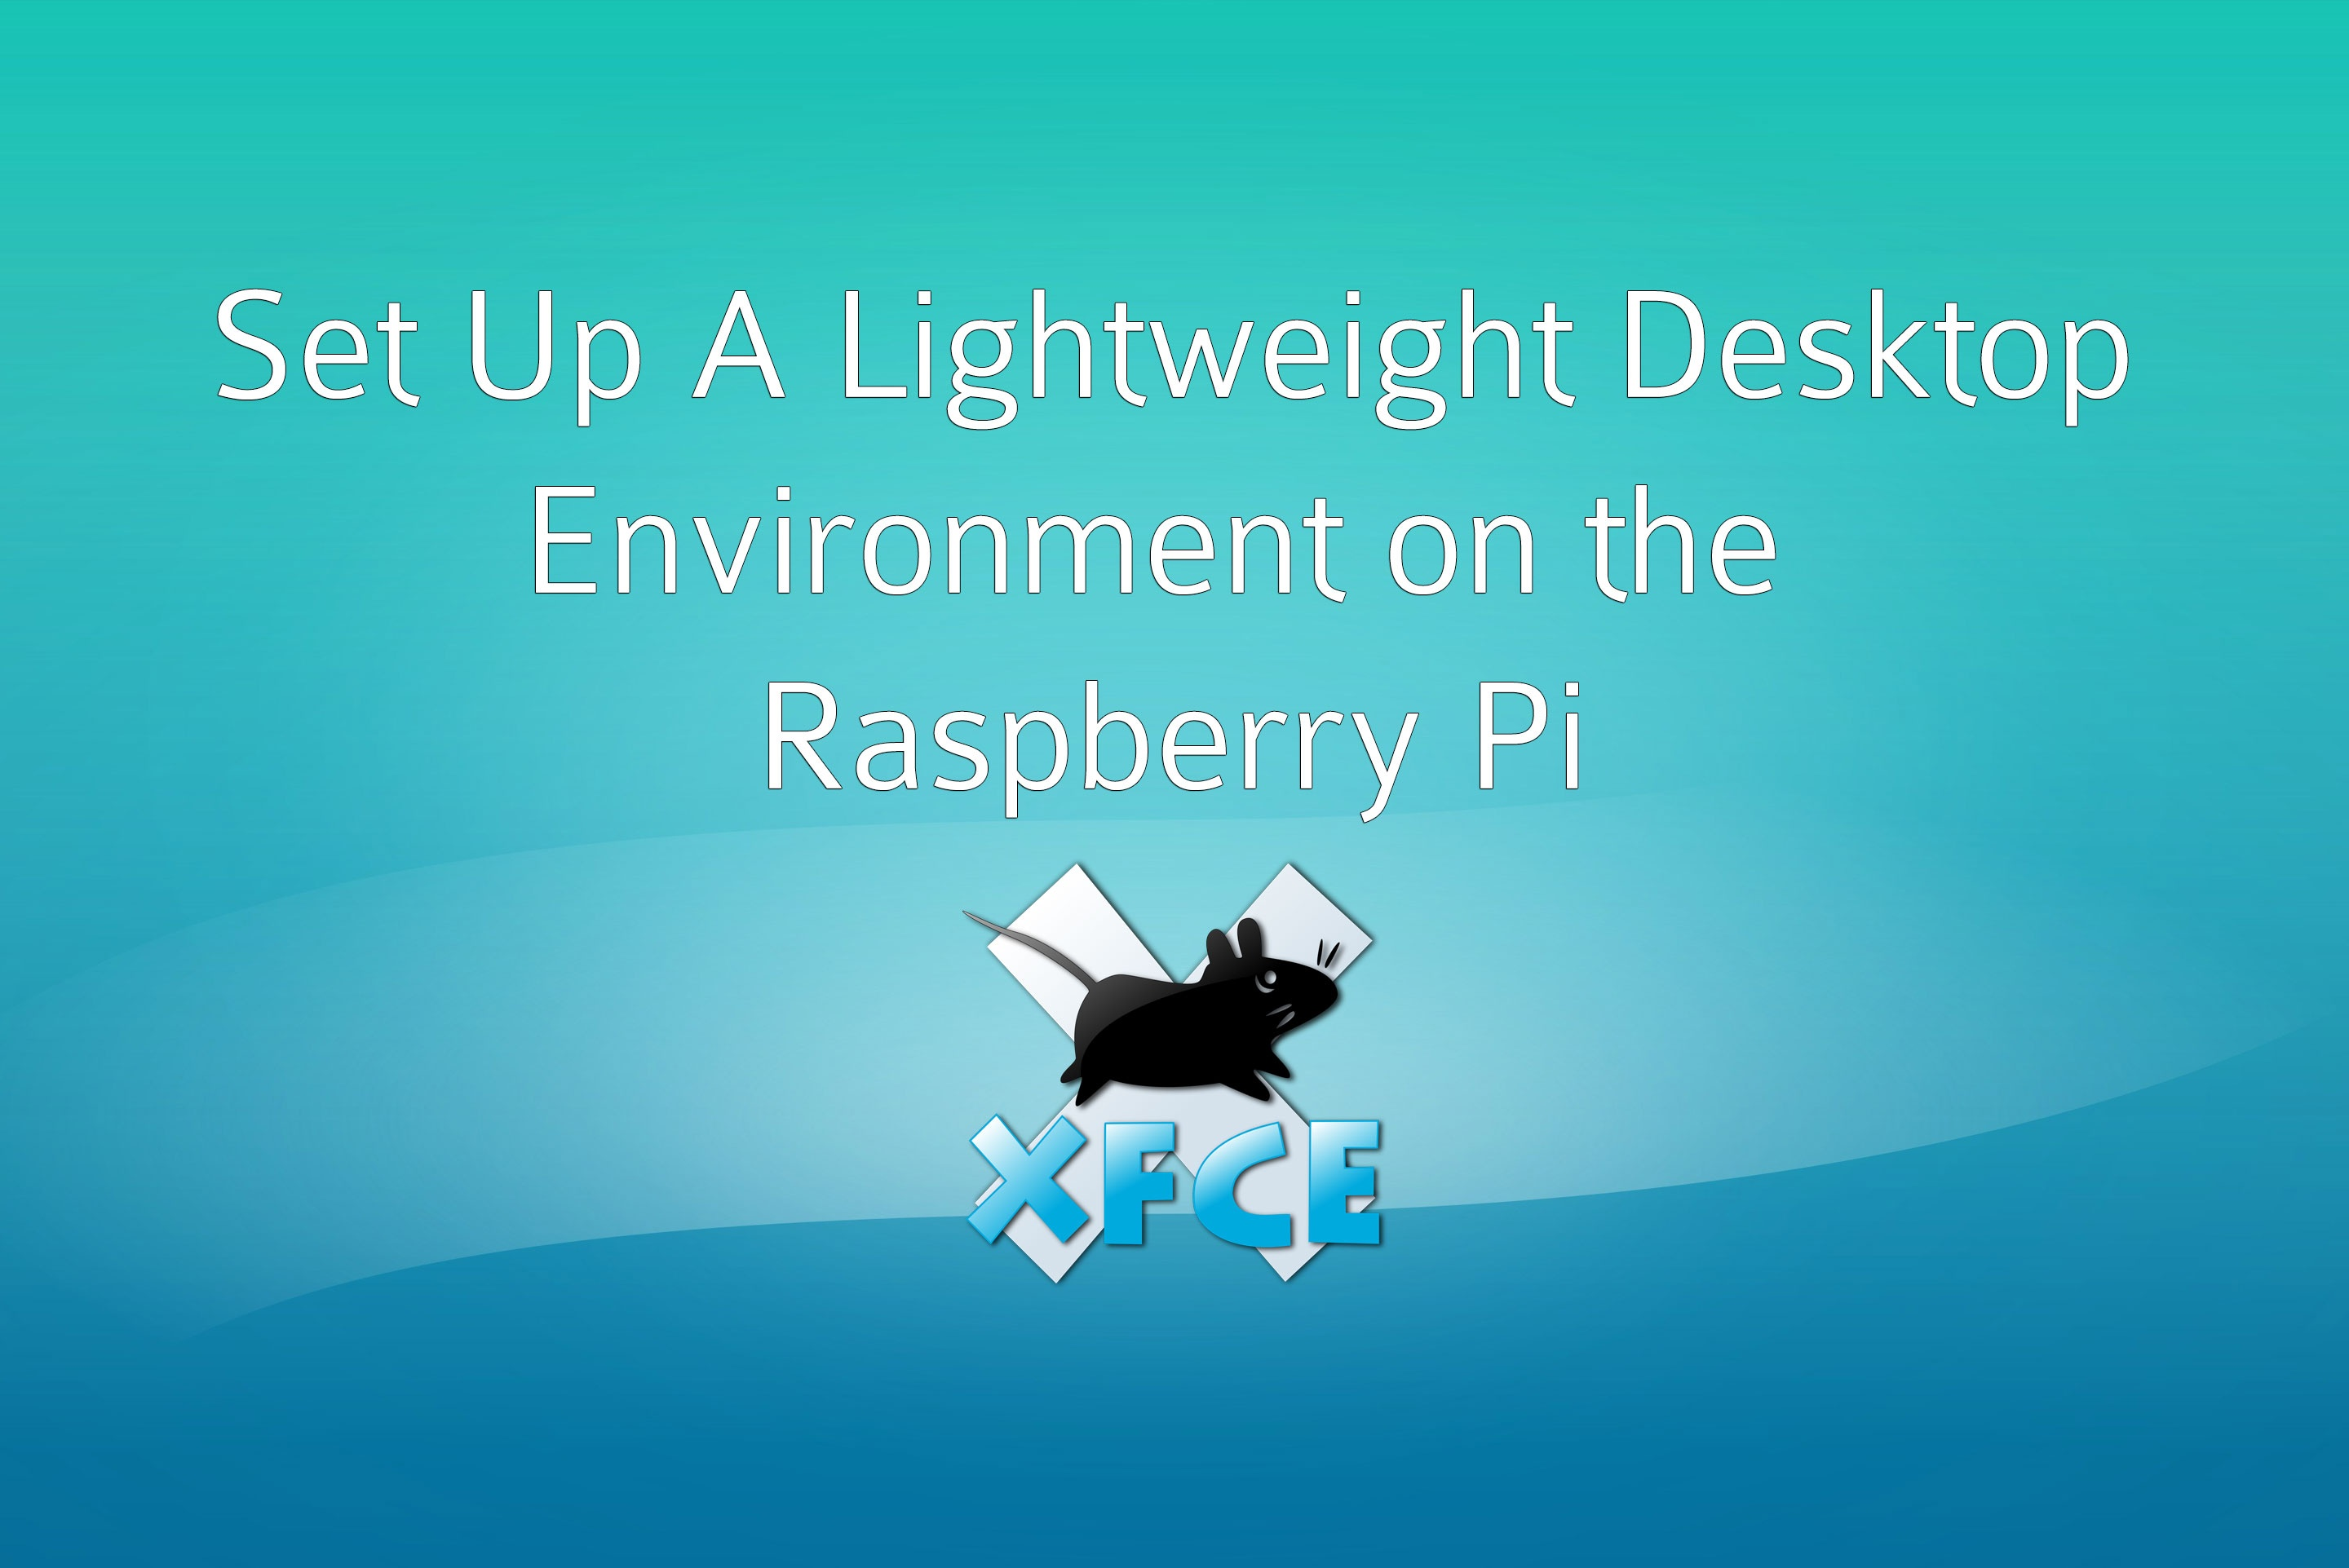 Light-weight-Deskop-Raspberry-Pi-XFCE4